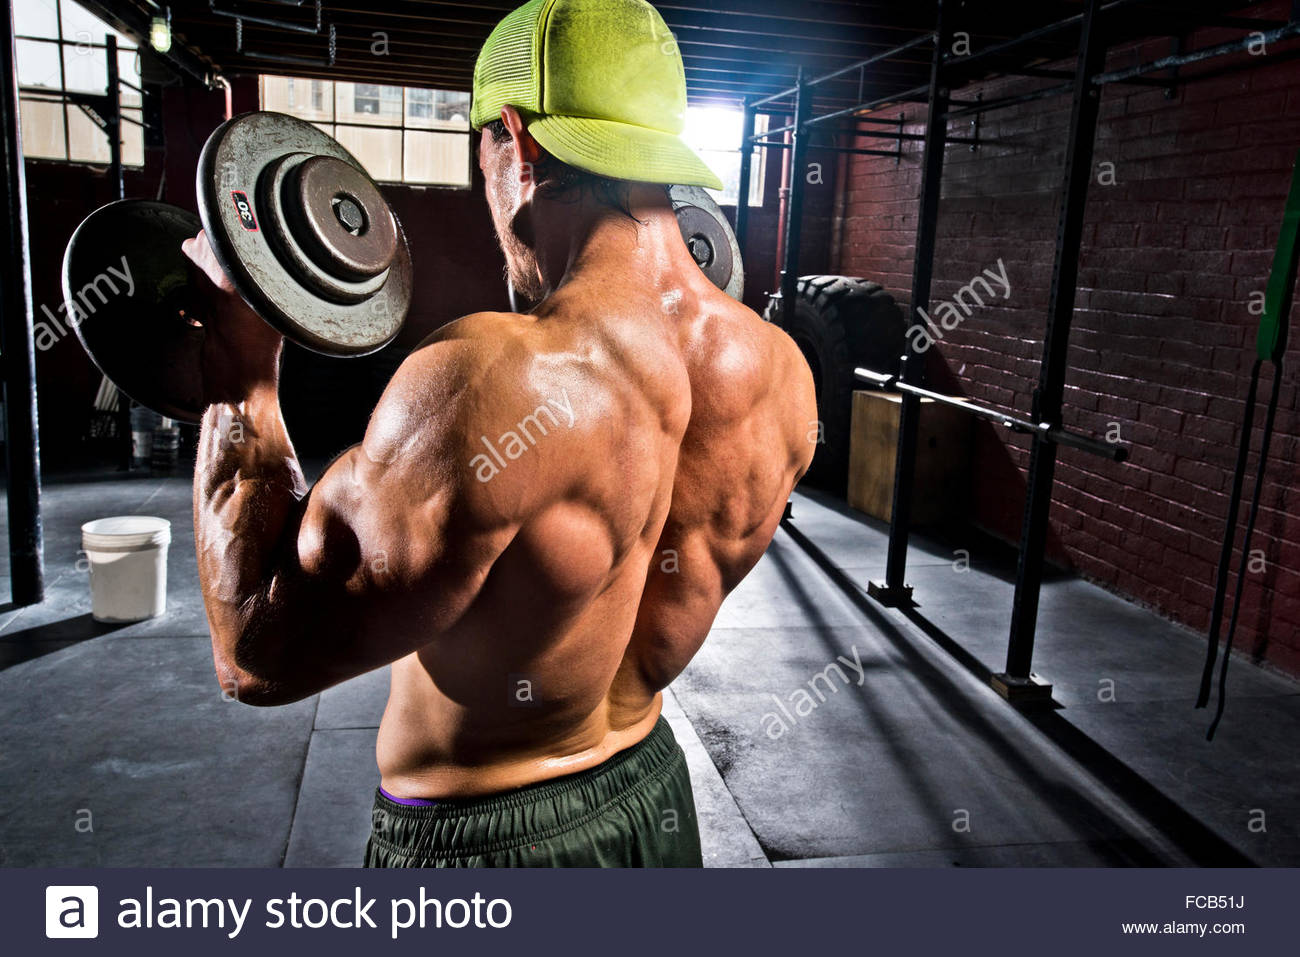 An athlete performs dumbell curls. - Stock Image